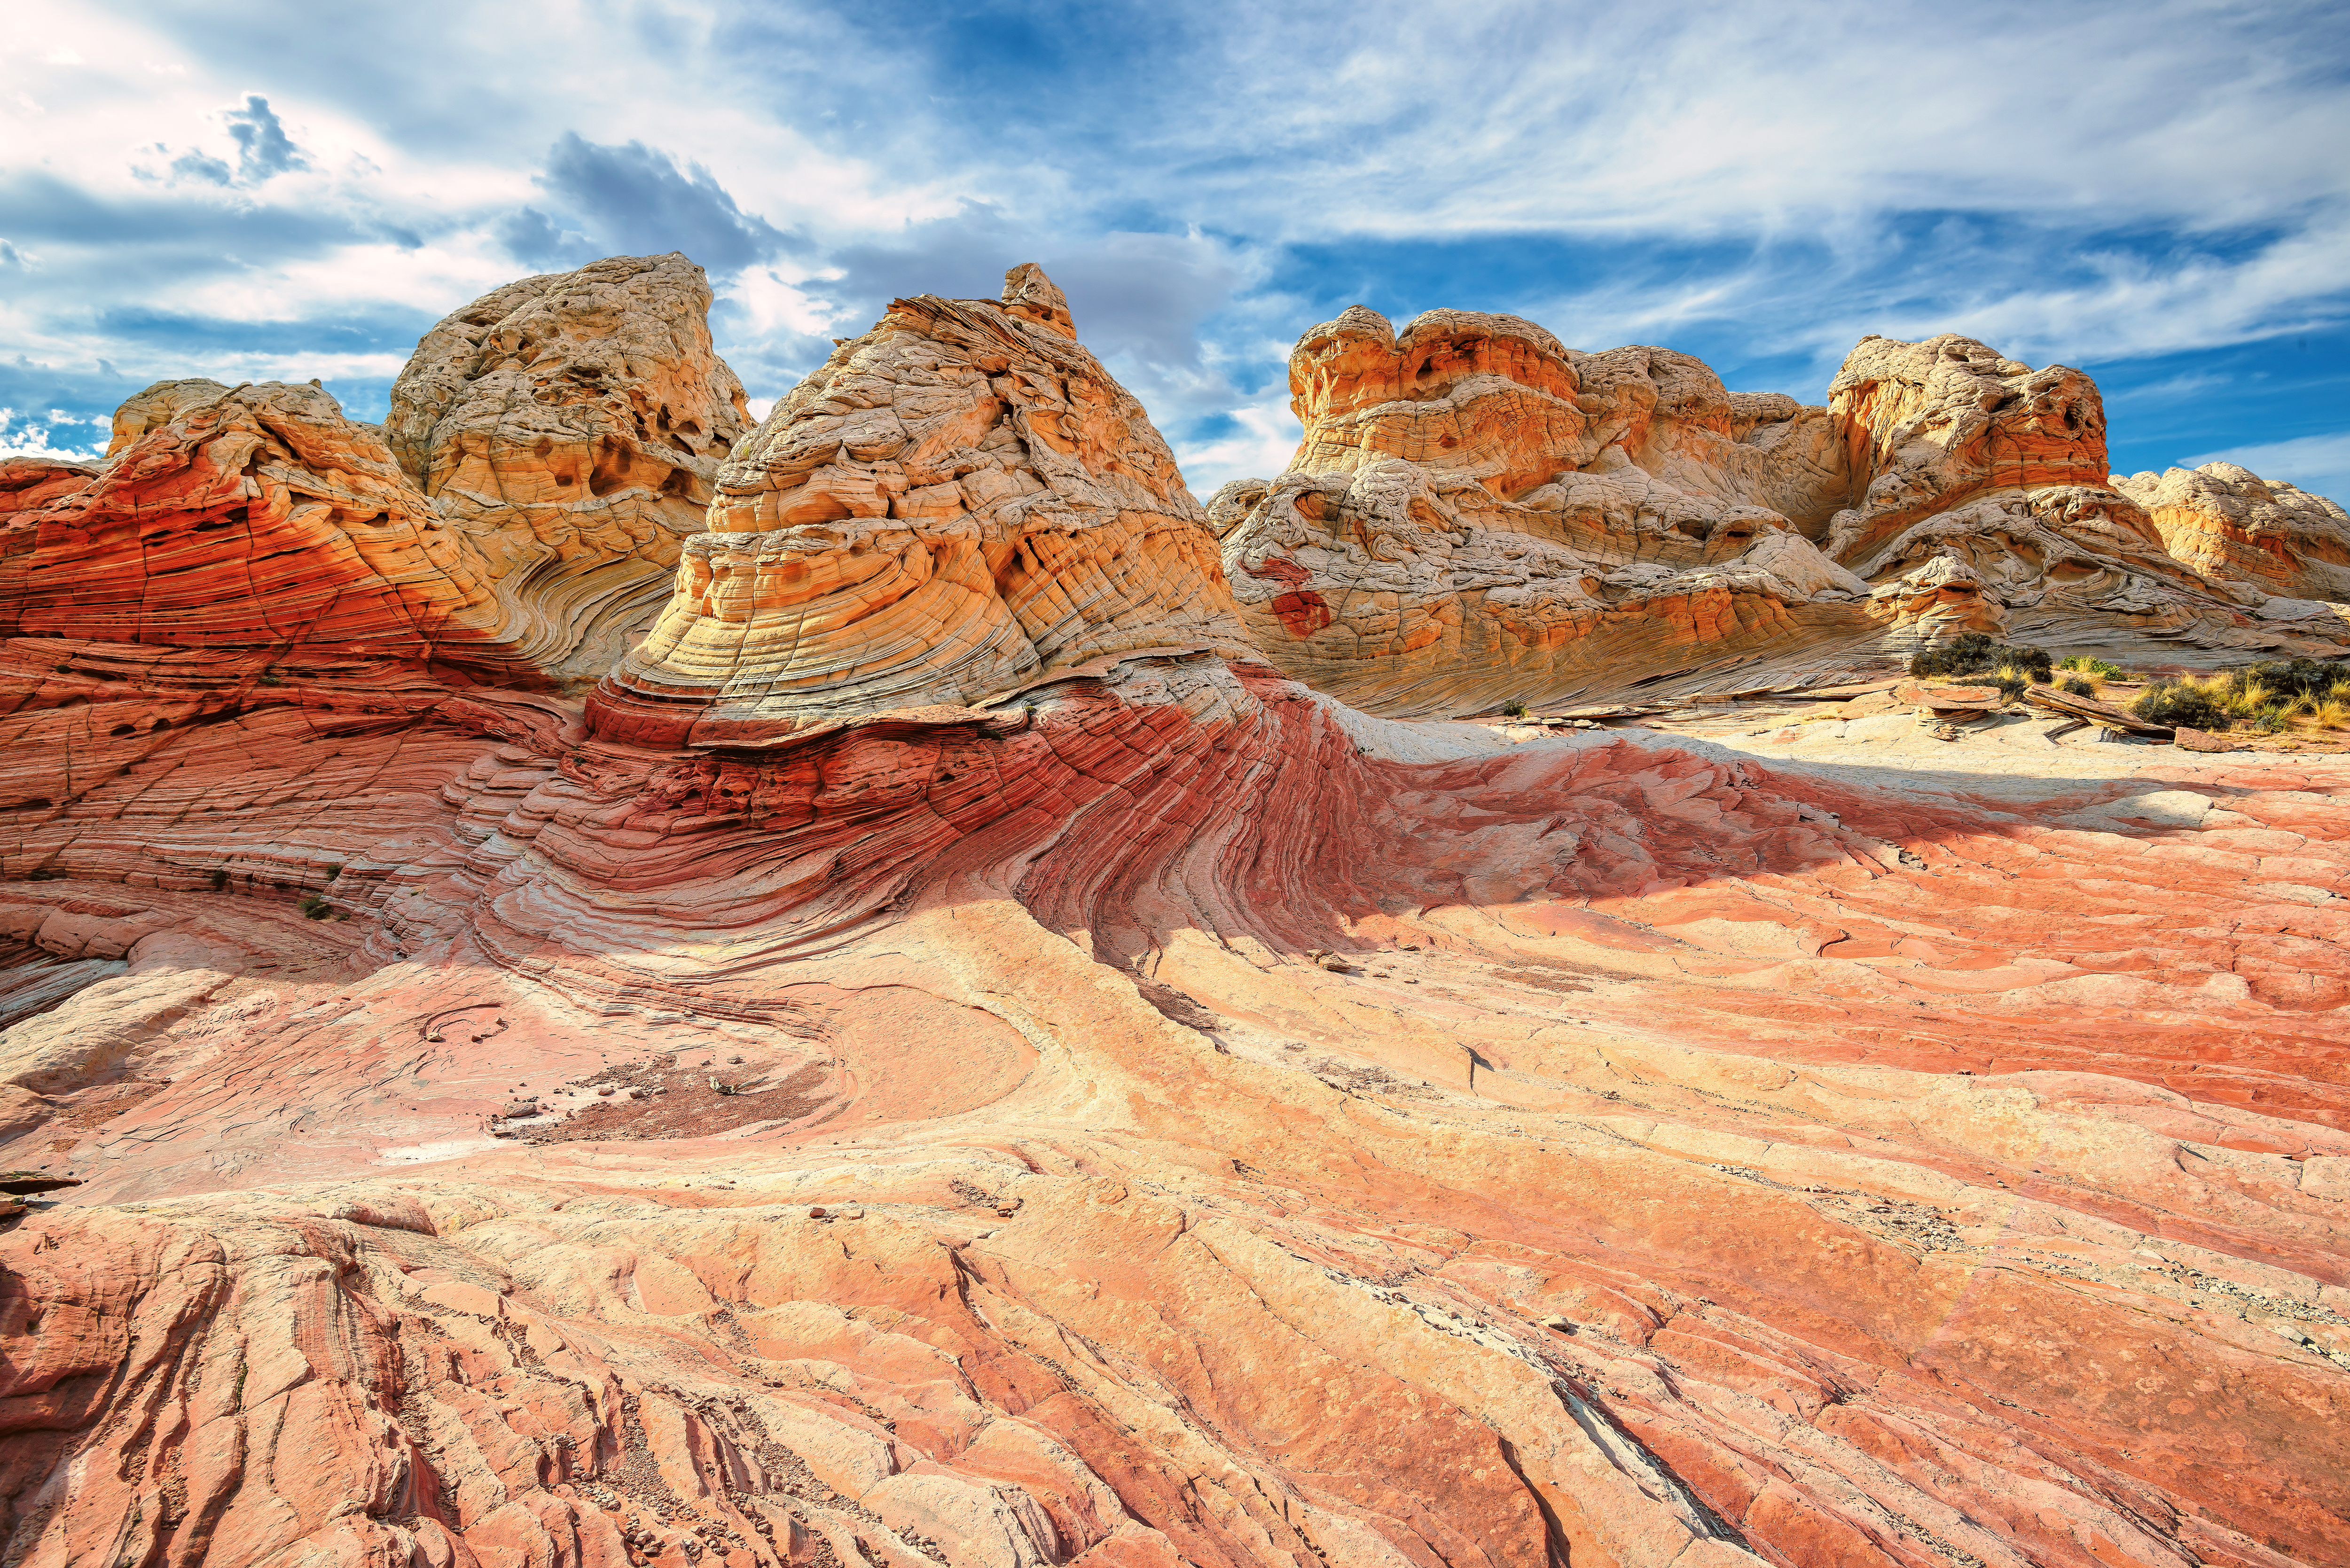 White Pocket area of Vermilion Cliffs National Monument